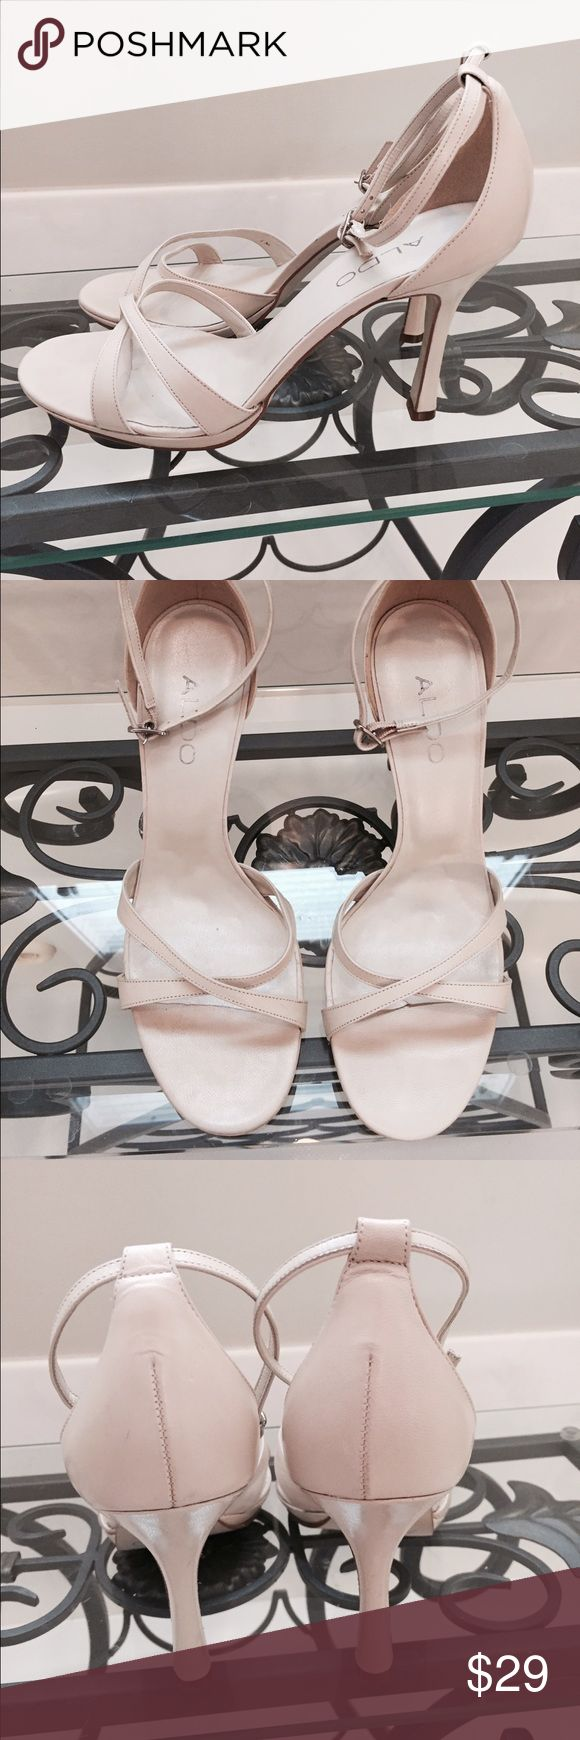 Aldo cream strappy heels 39 great condition! only show wear on soles. Only worn a few times.  Ankle strap ALDO Shoes Sandals